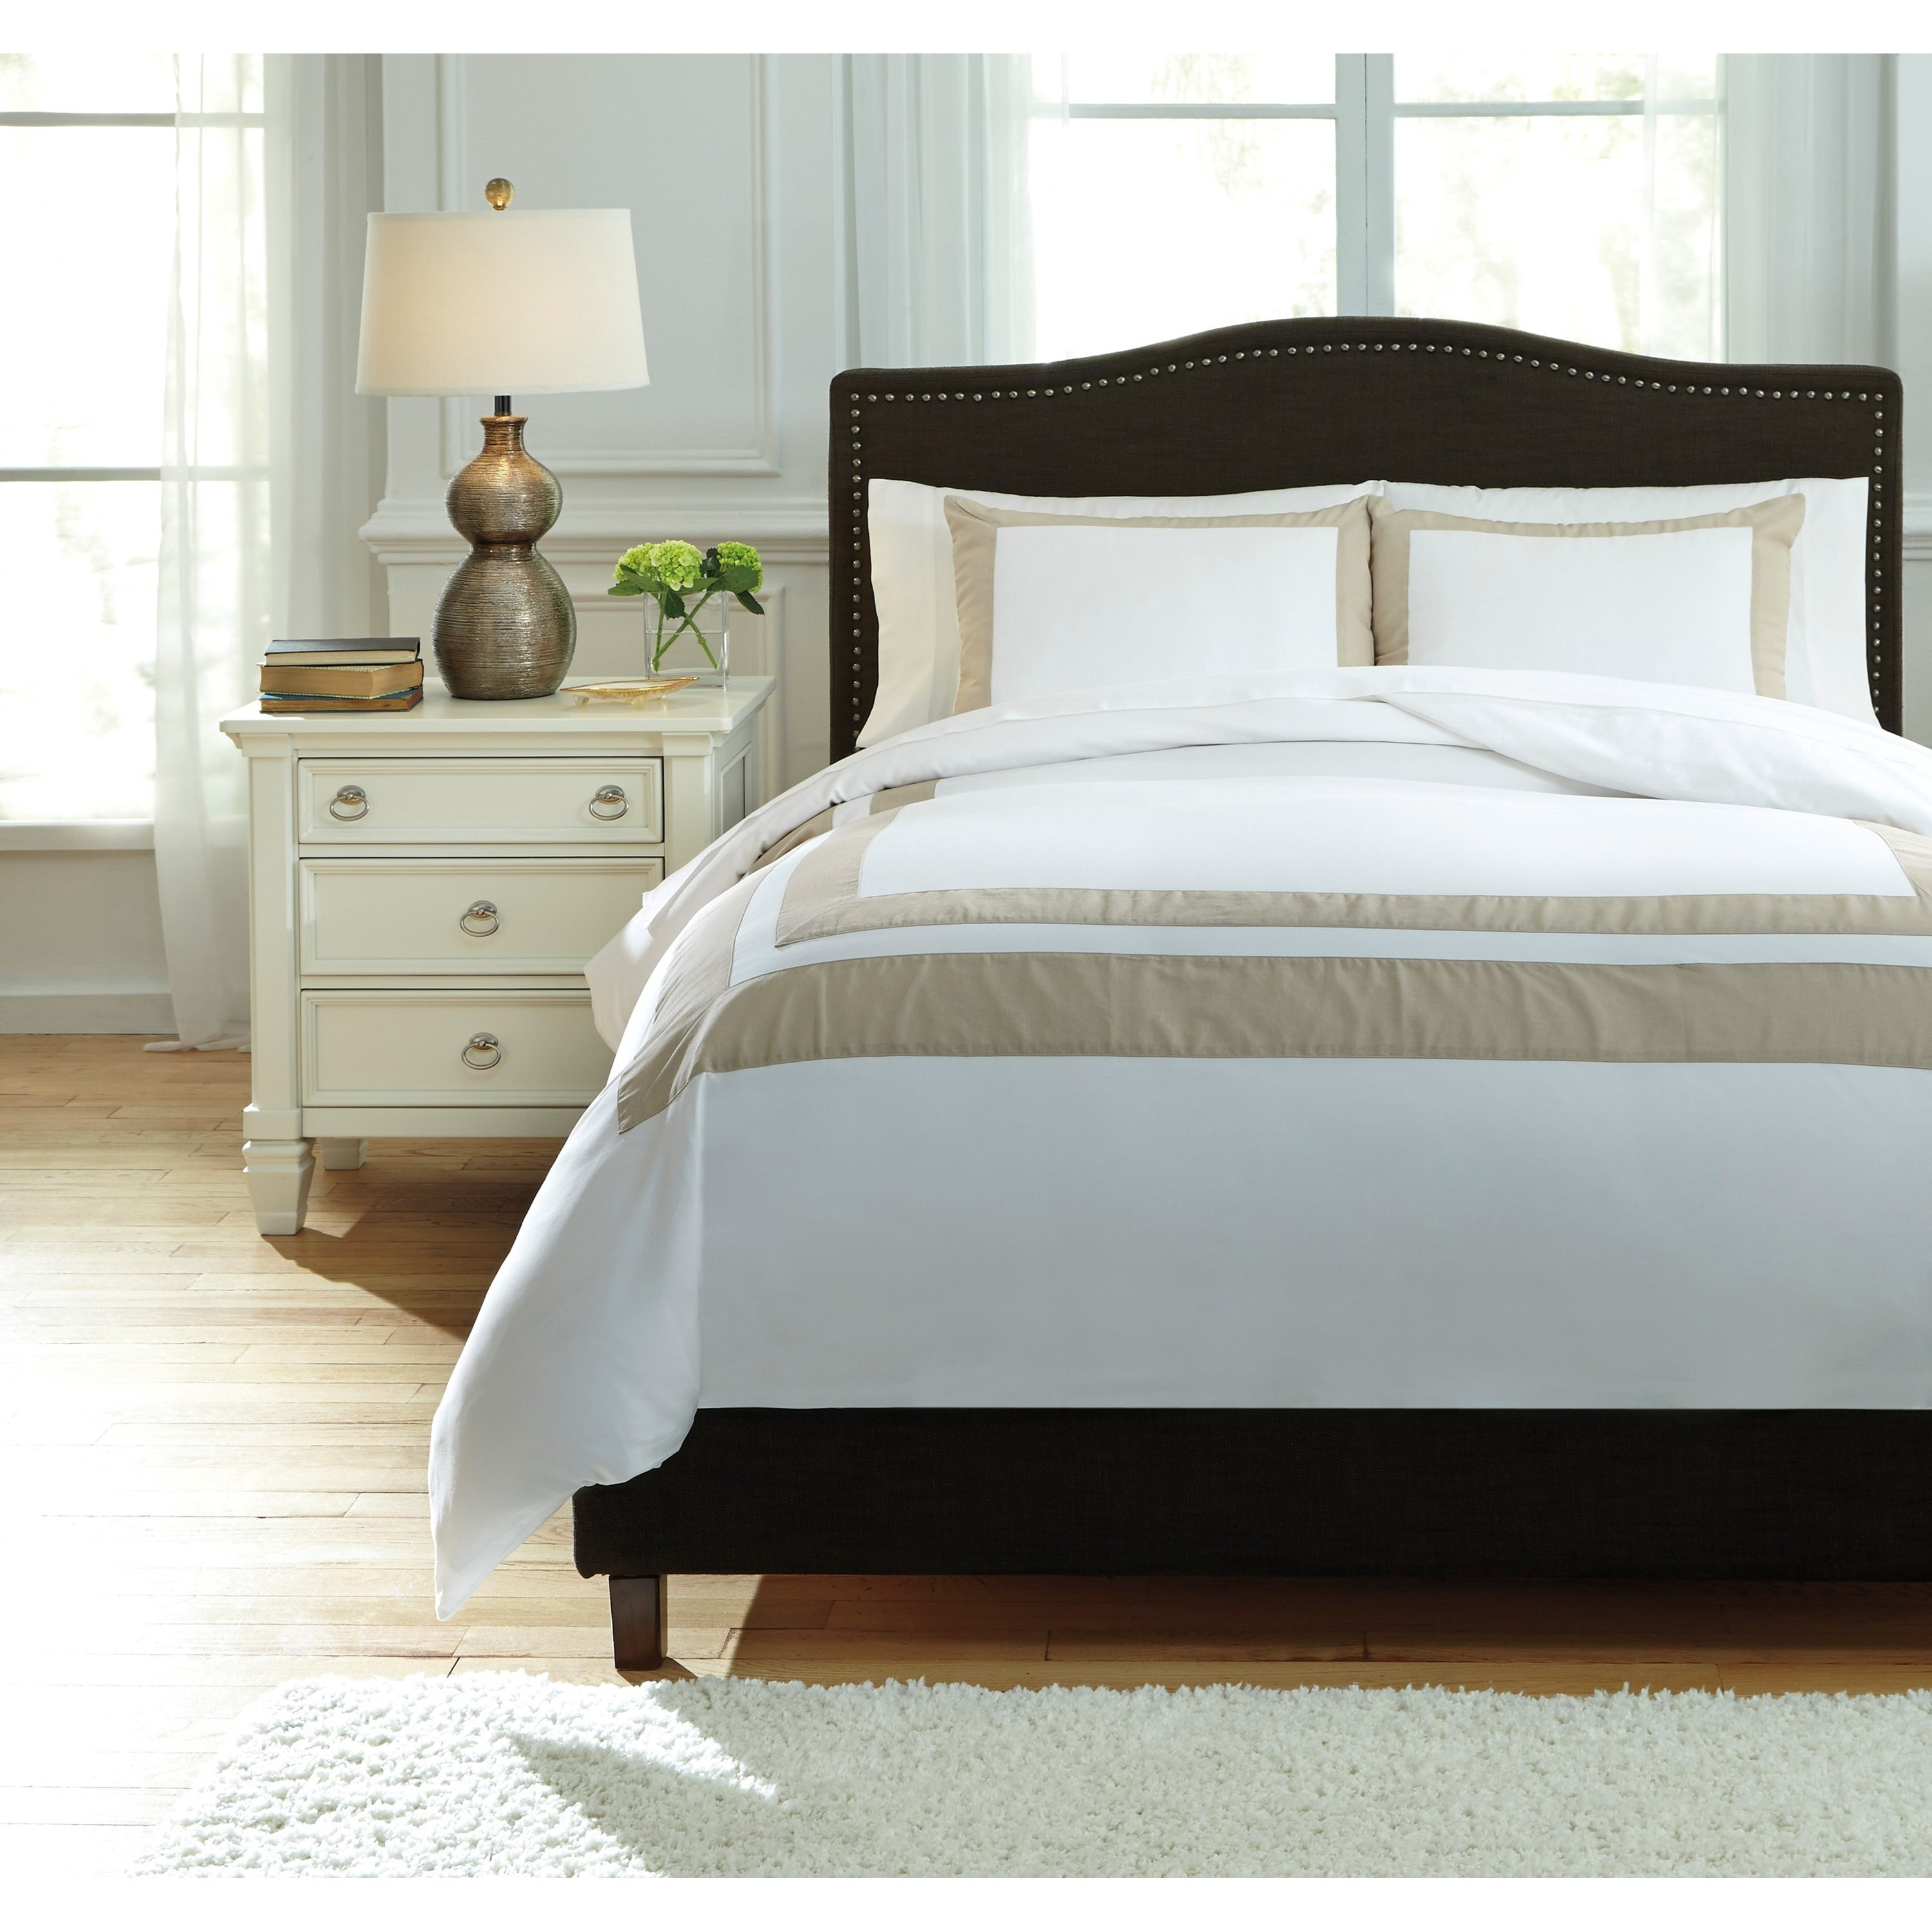 Bedding Sets Queen Andor White Sand Duvet Cover Set by Signature Design by Ashley at Lapeer Furniture & Mattress Center